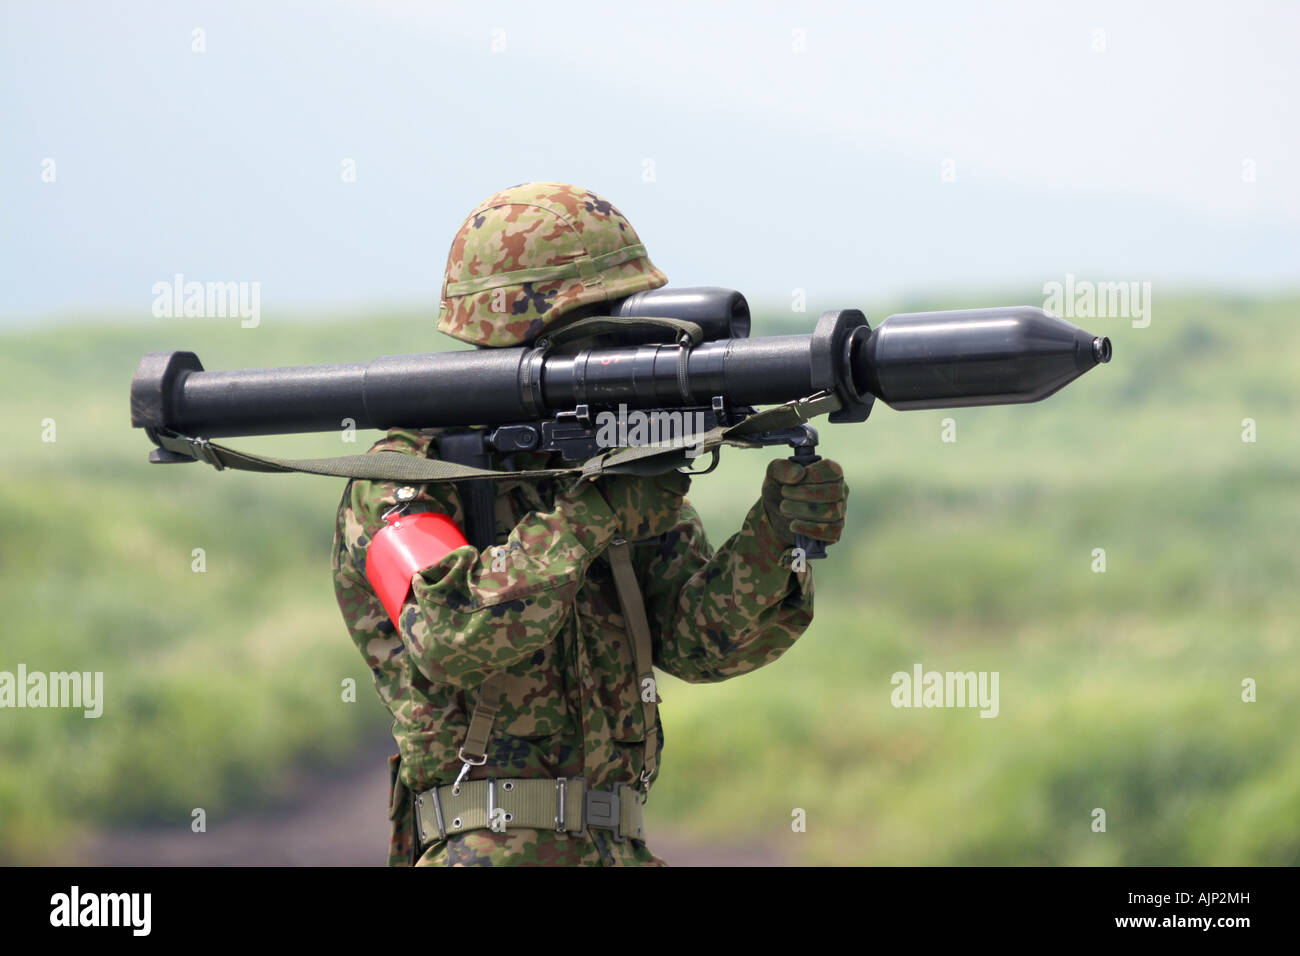 The Panzerfaust 3 Anti-tank rocket launcher of Japan Ground Self-Defense Force - Stock Image